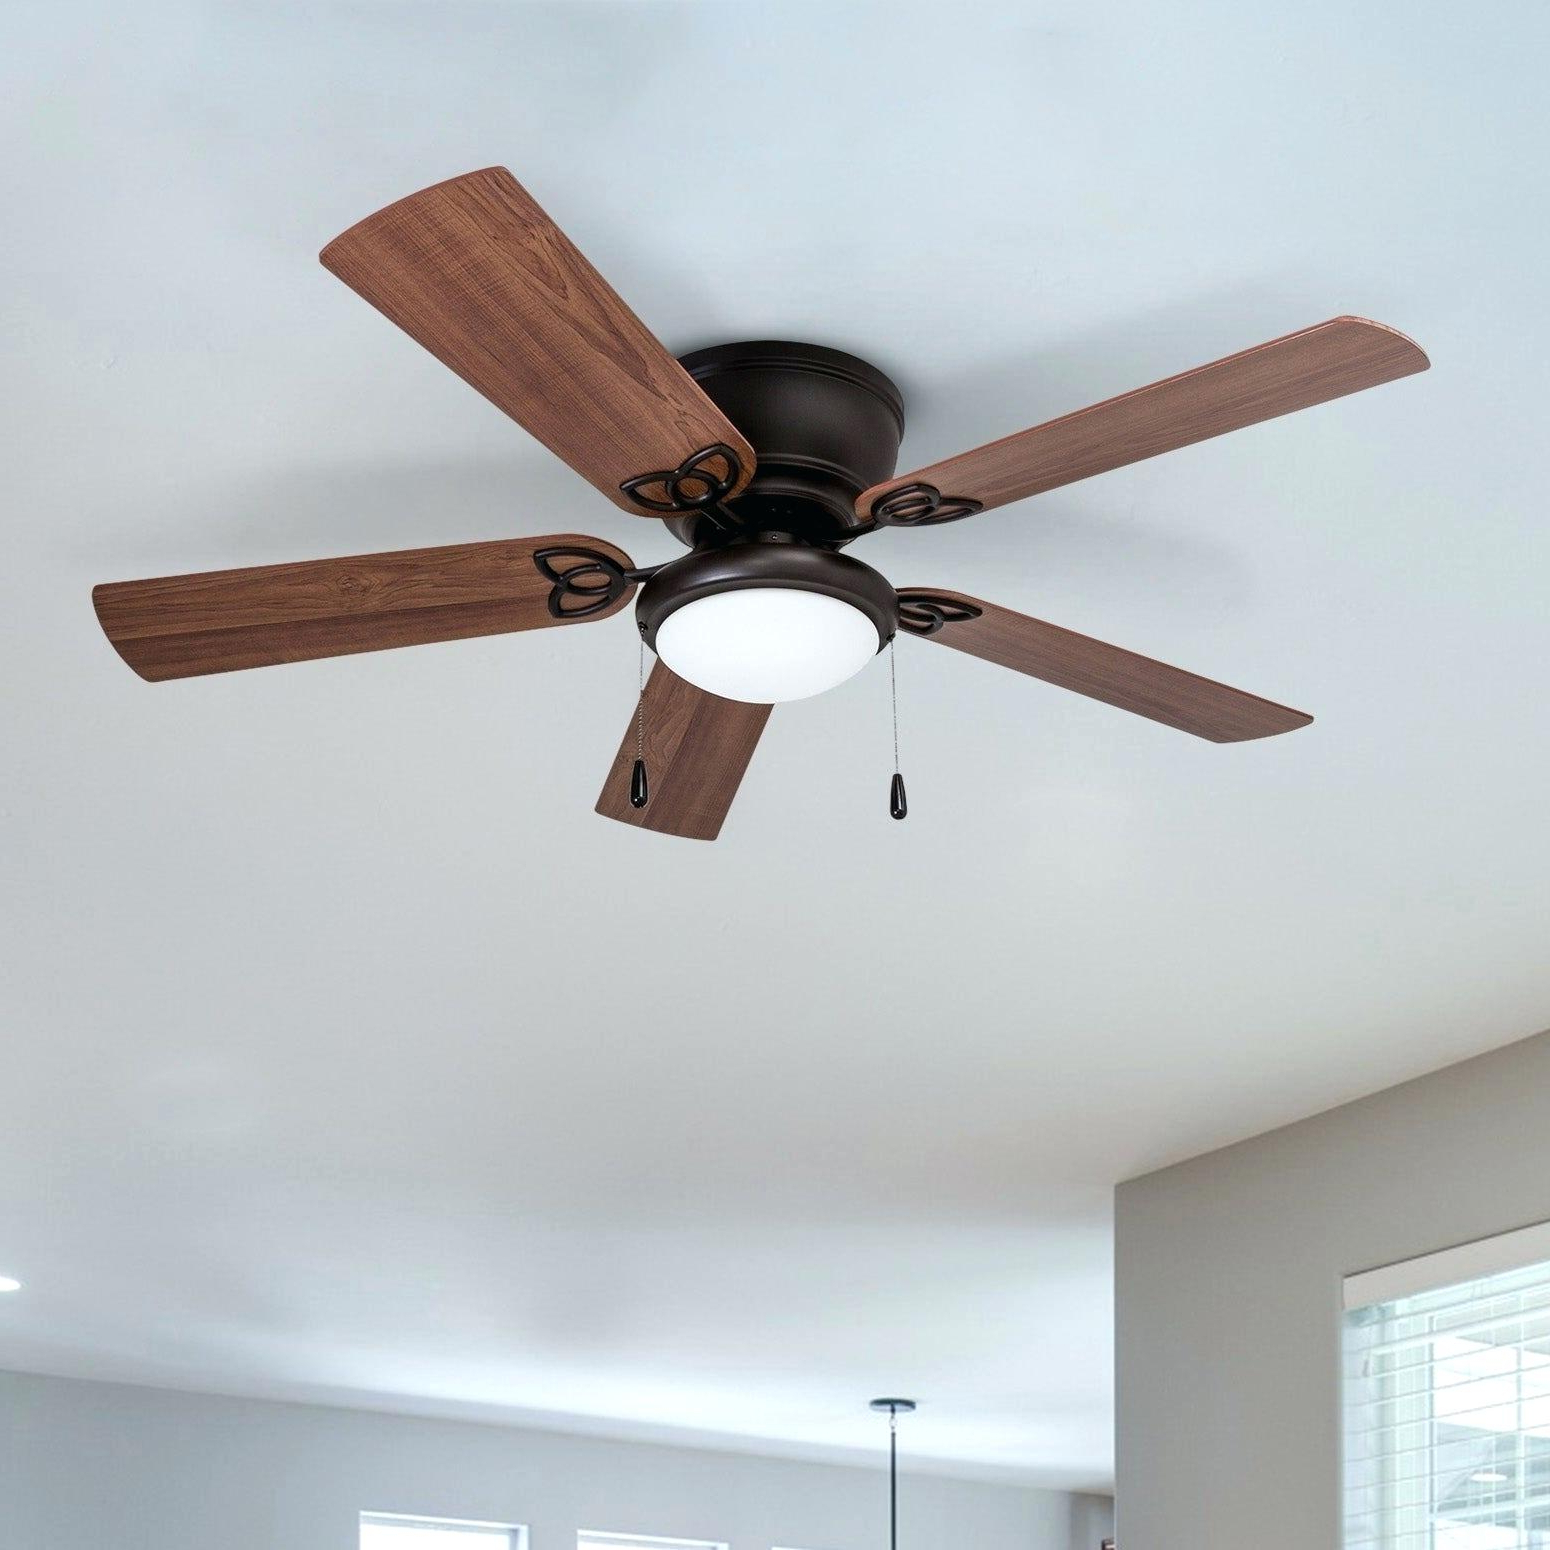 Kyla 5 Blade Ceiling Fans In Favorite Ceiling Fan For Boys Room – Shambalaspa (View 20 of 20)